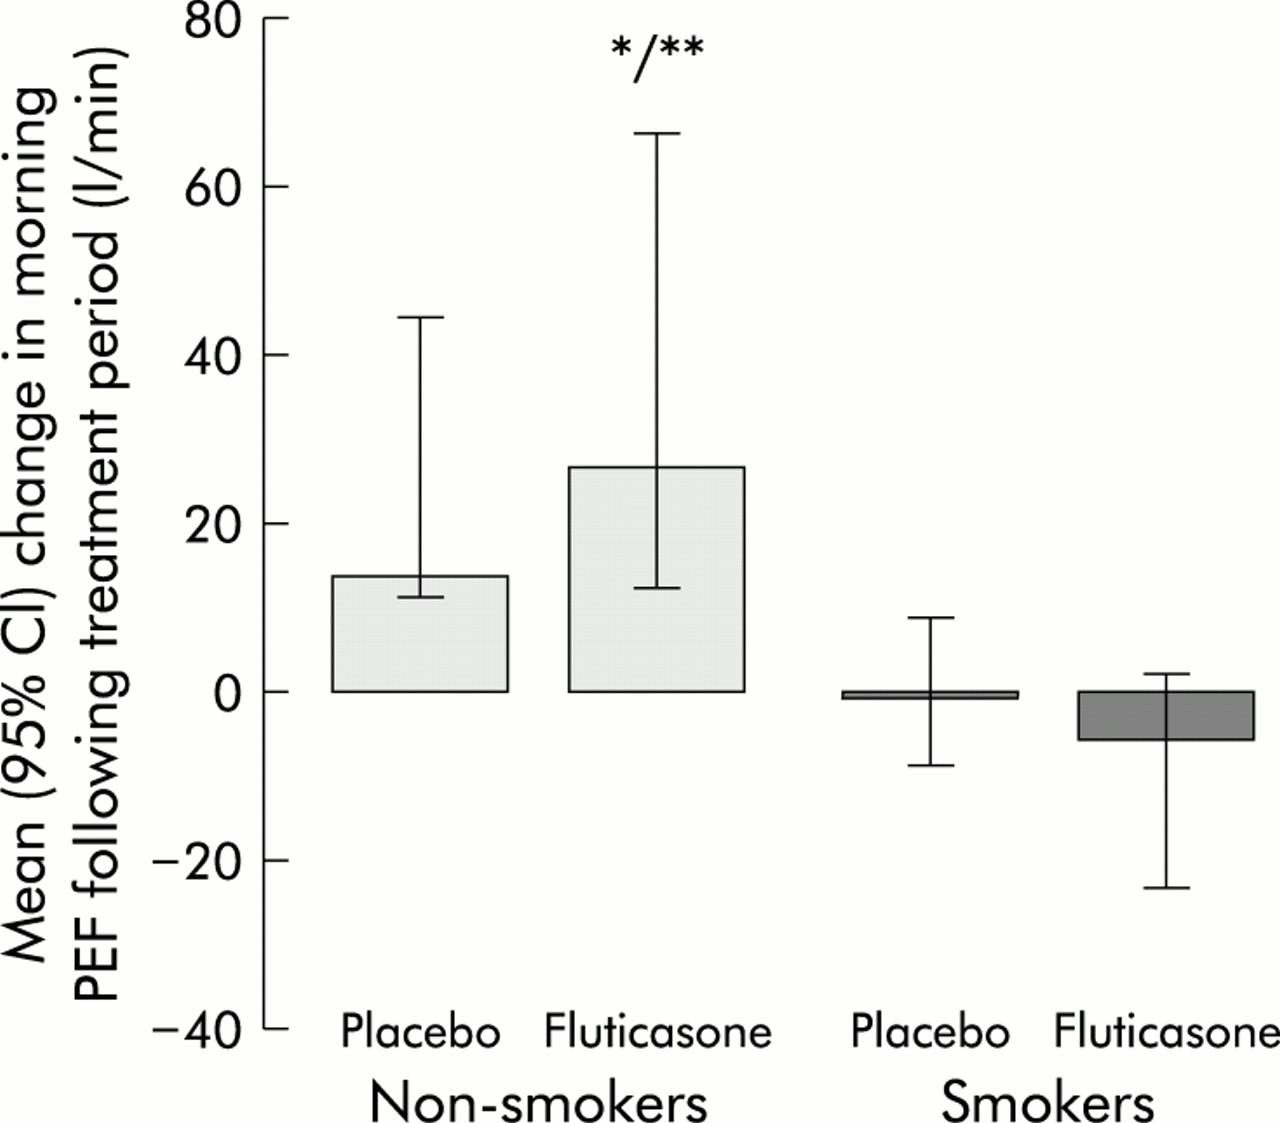 Influence of cigarette smoking on inhaled corticosteroid treatment